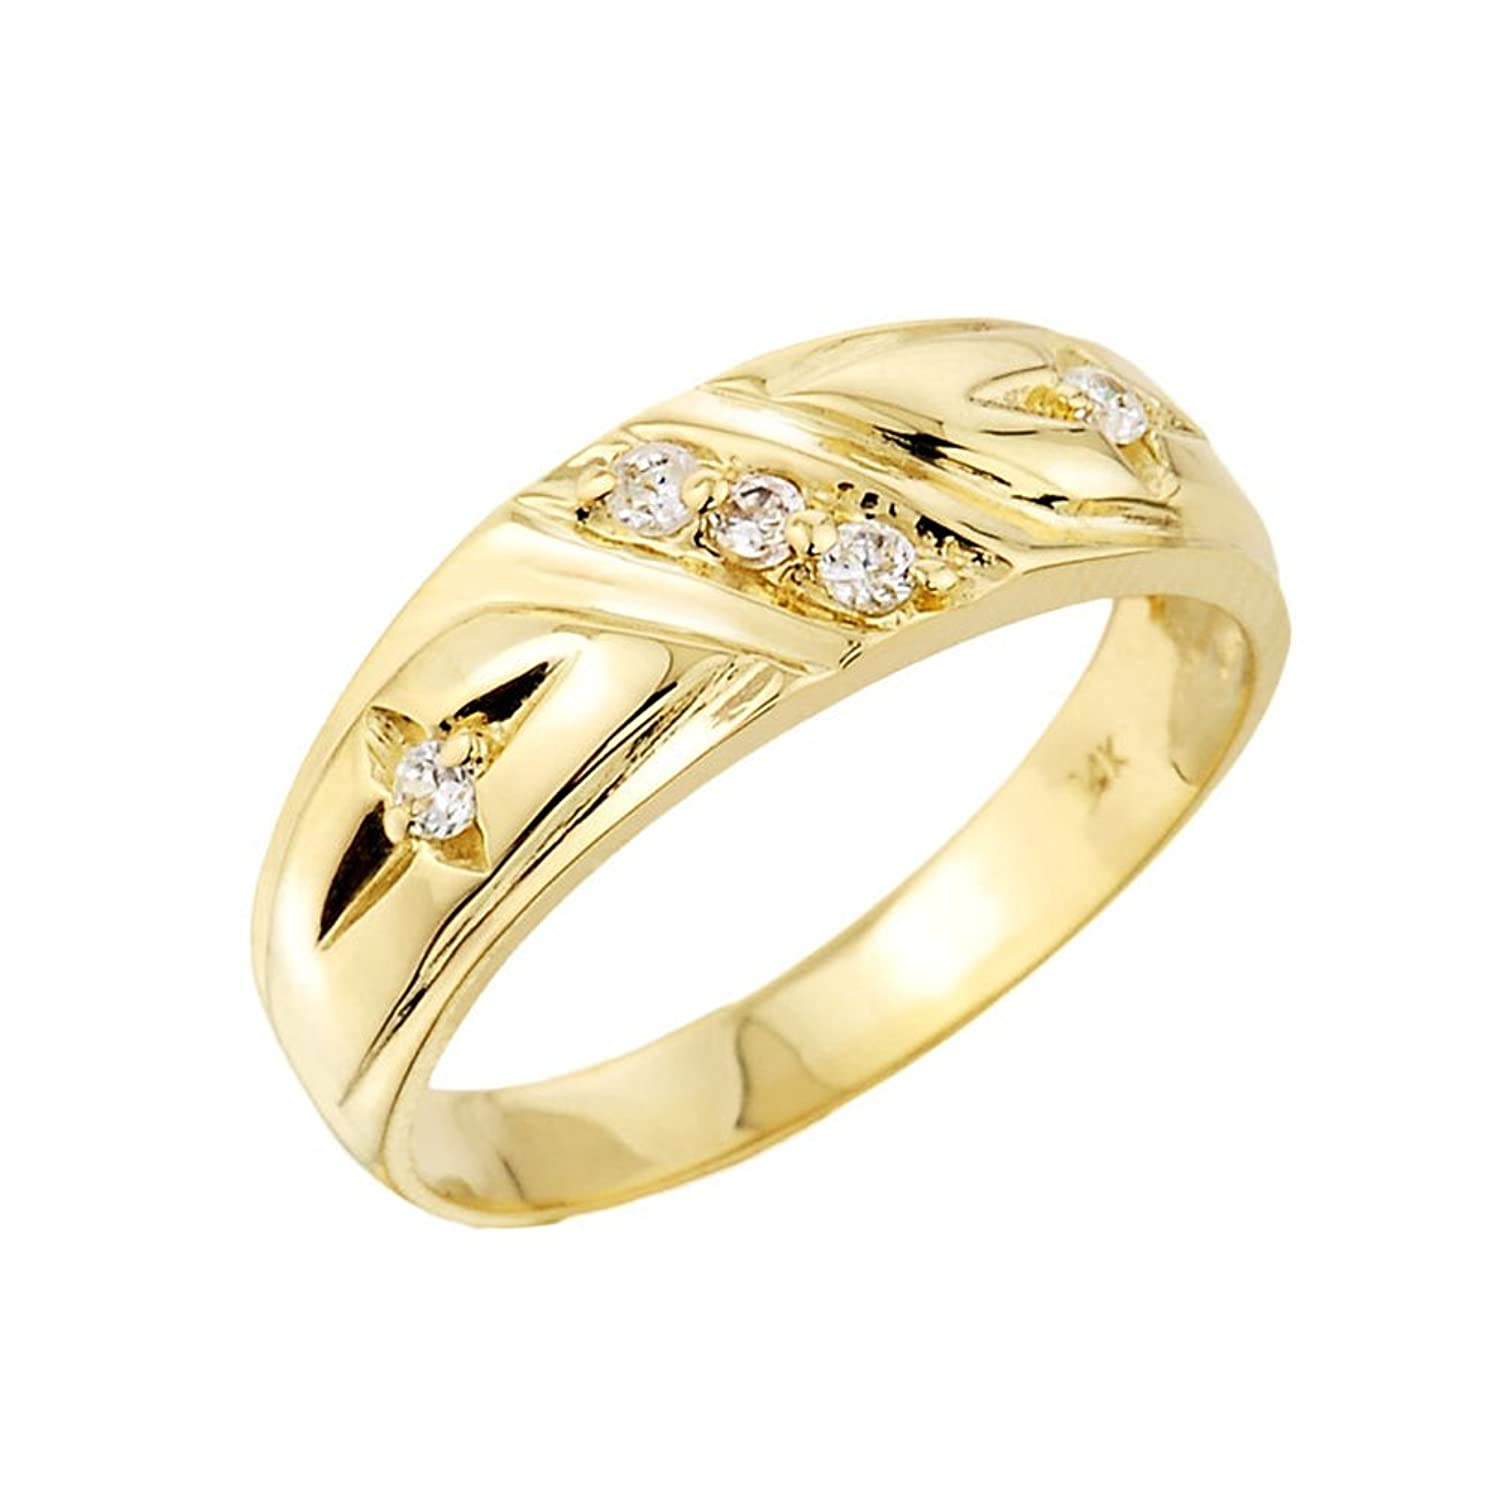 Yellow Gold and Diamond Wedding Ring